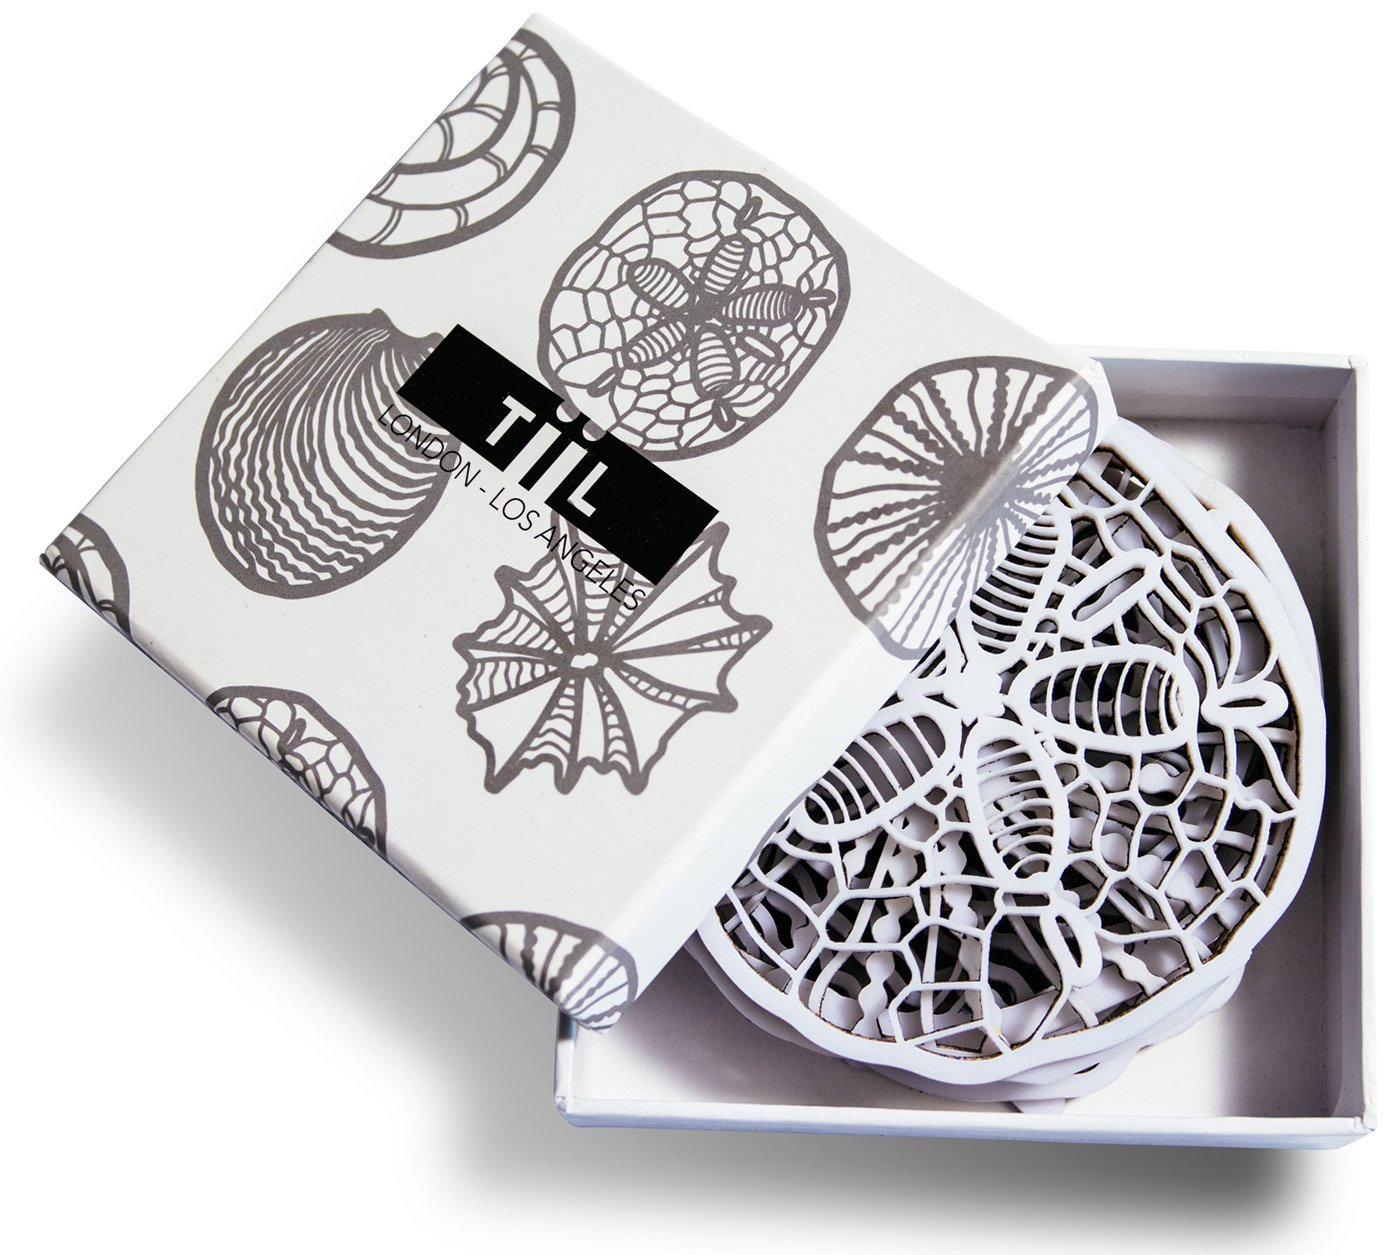 drink coasters by tiil seashellinspired designer coaster set of  - drink coasters by tiil seashellinspired designer coaster set of  plusgift box white amazoncouk kitchen  home